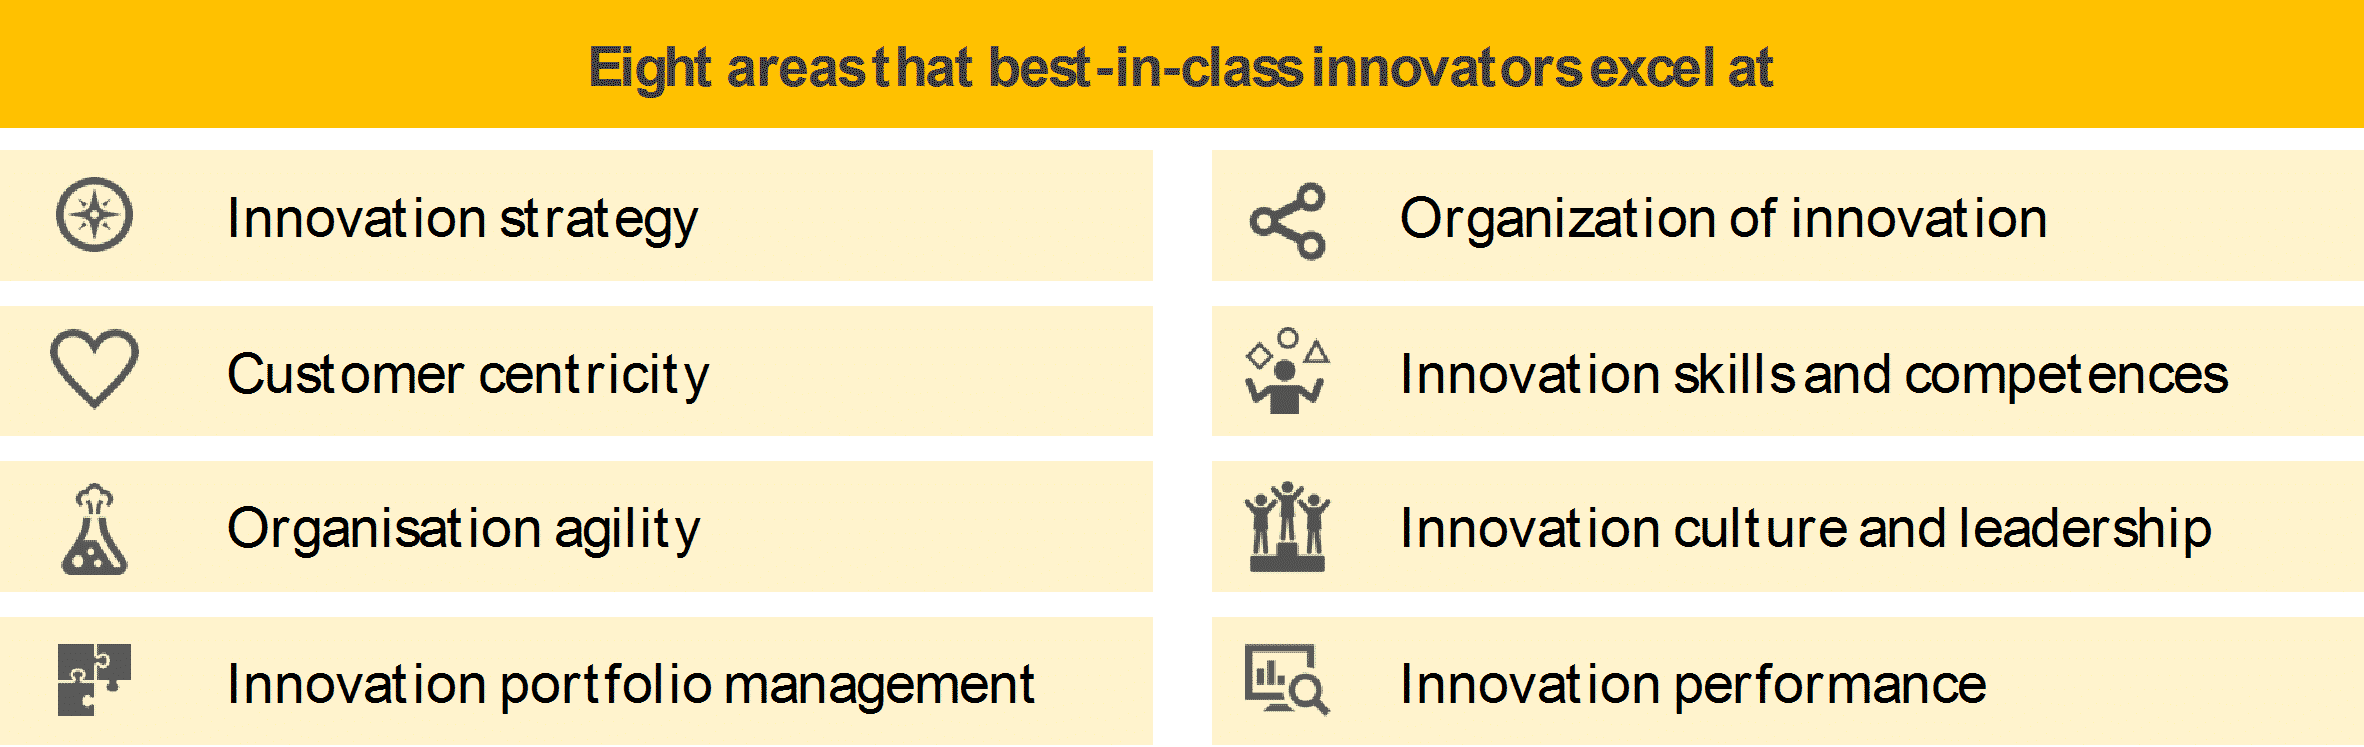 innovation areas